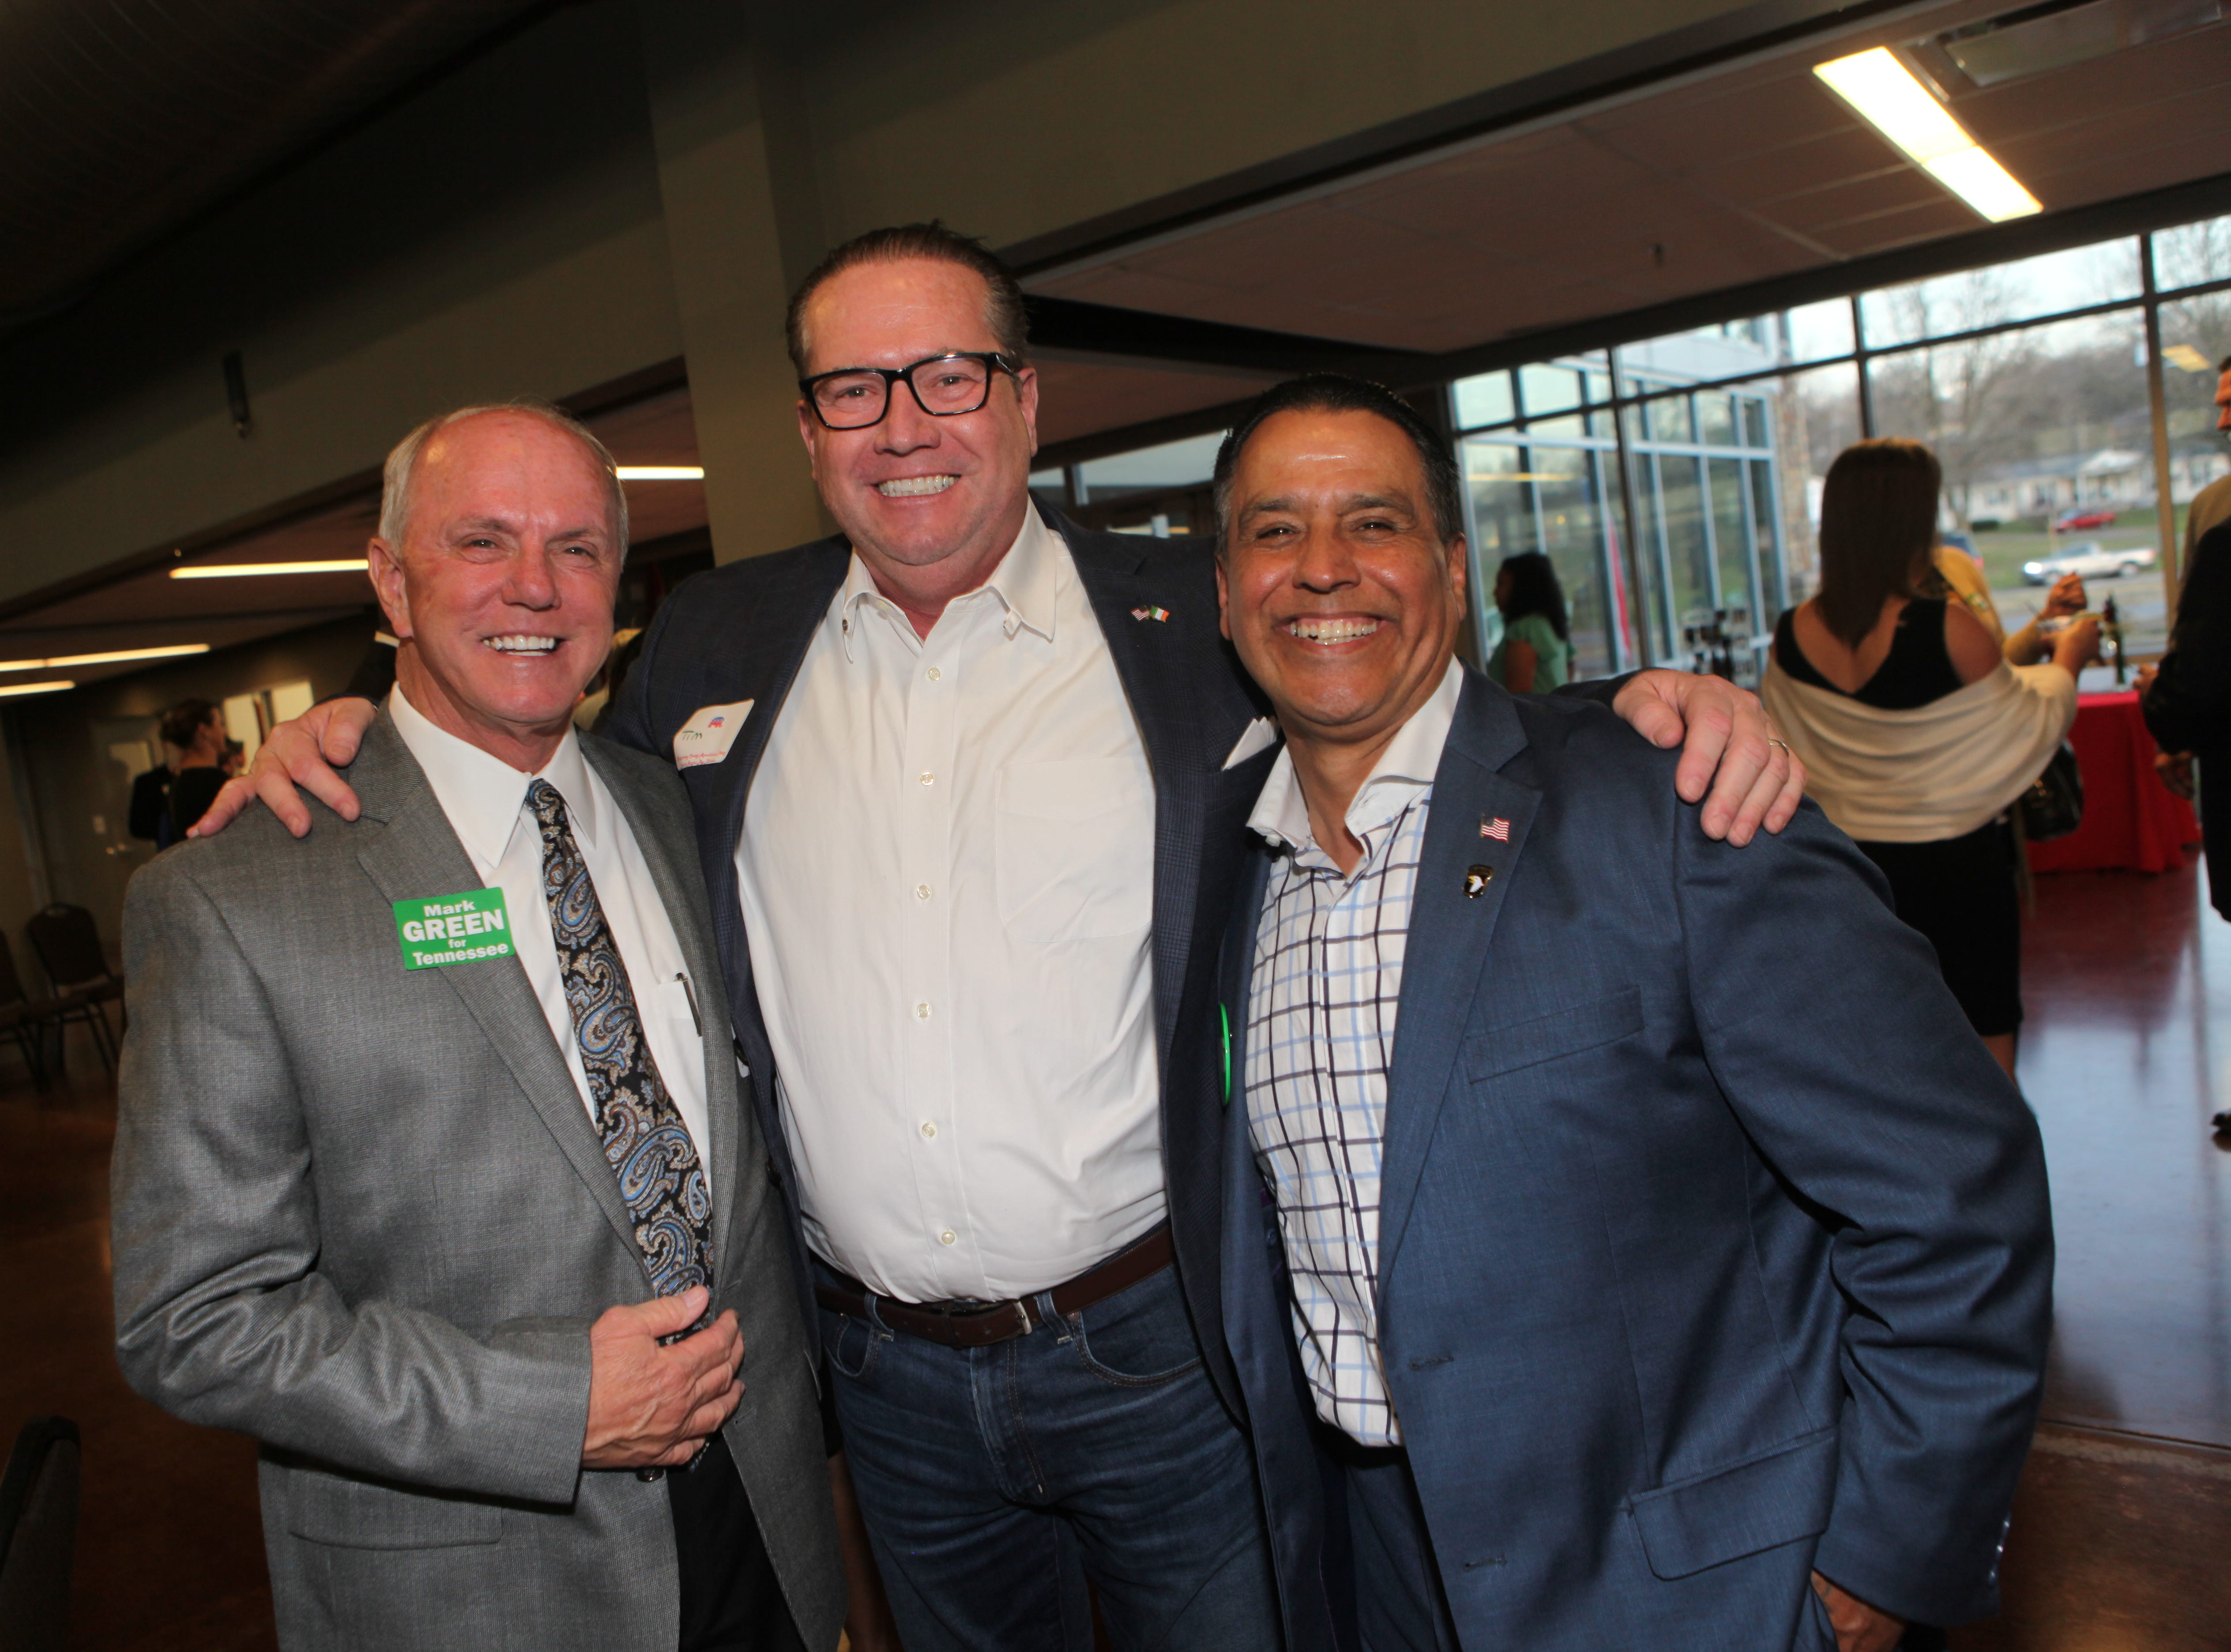 Montgomery County Republican Party held its annual Lincoln Reagan Dinner at Wilma Rudolph Event Center Friday, March 22, 2019.